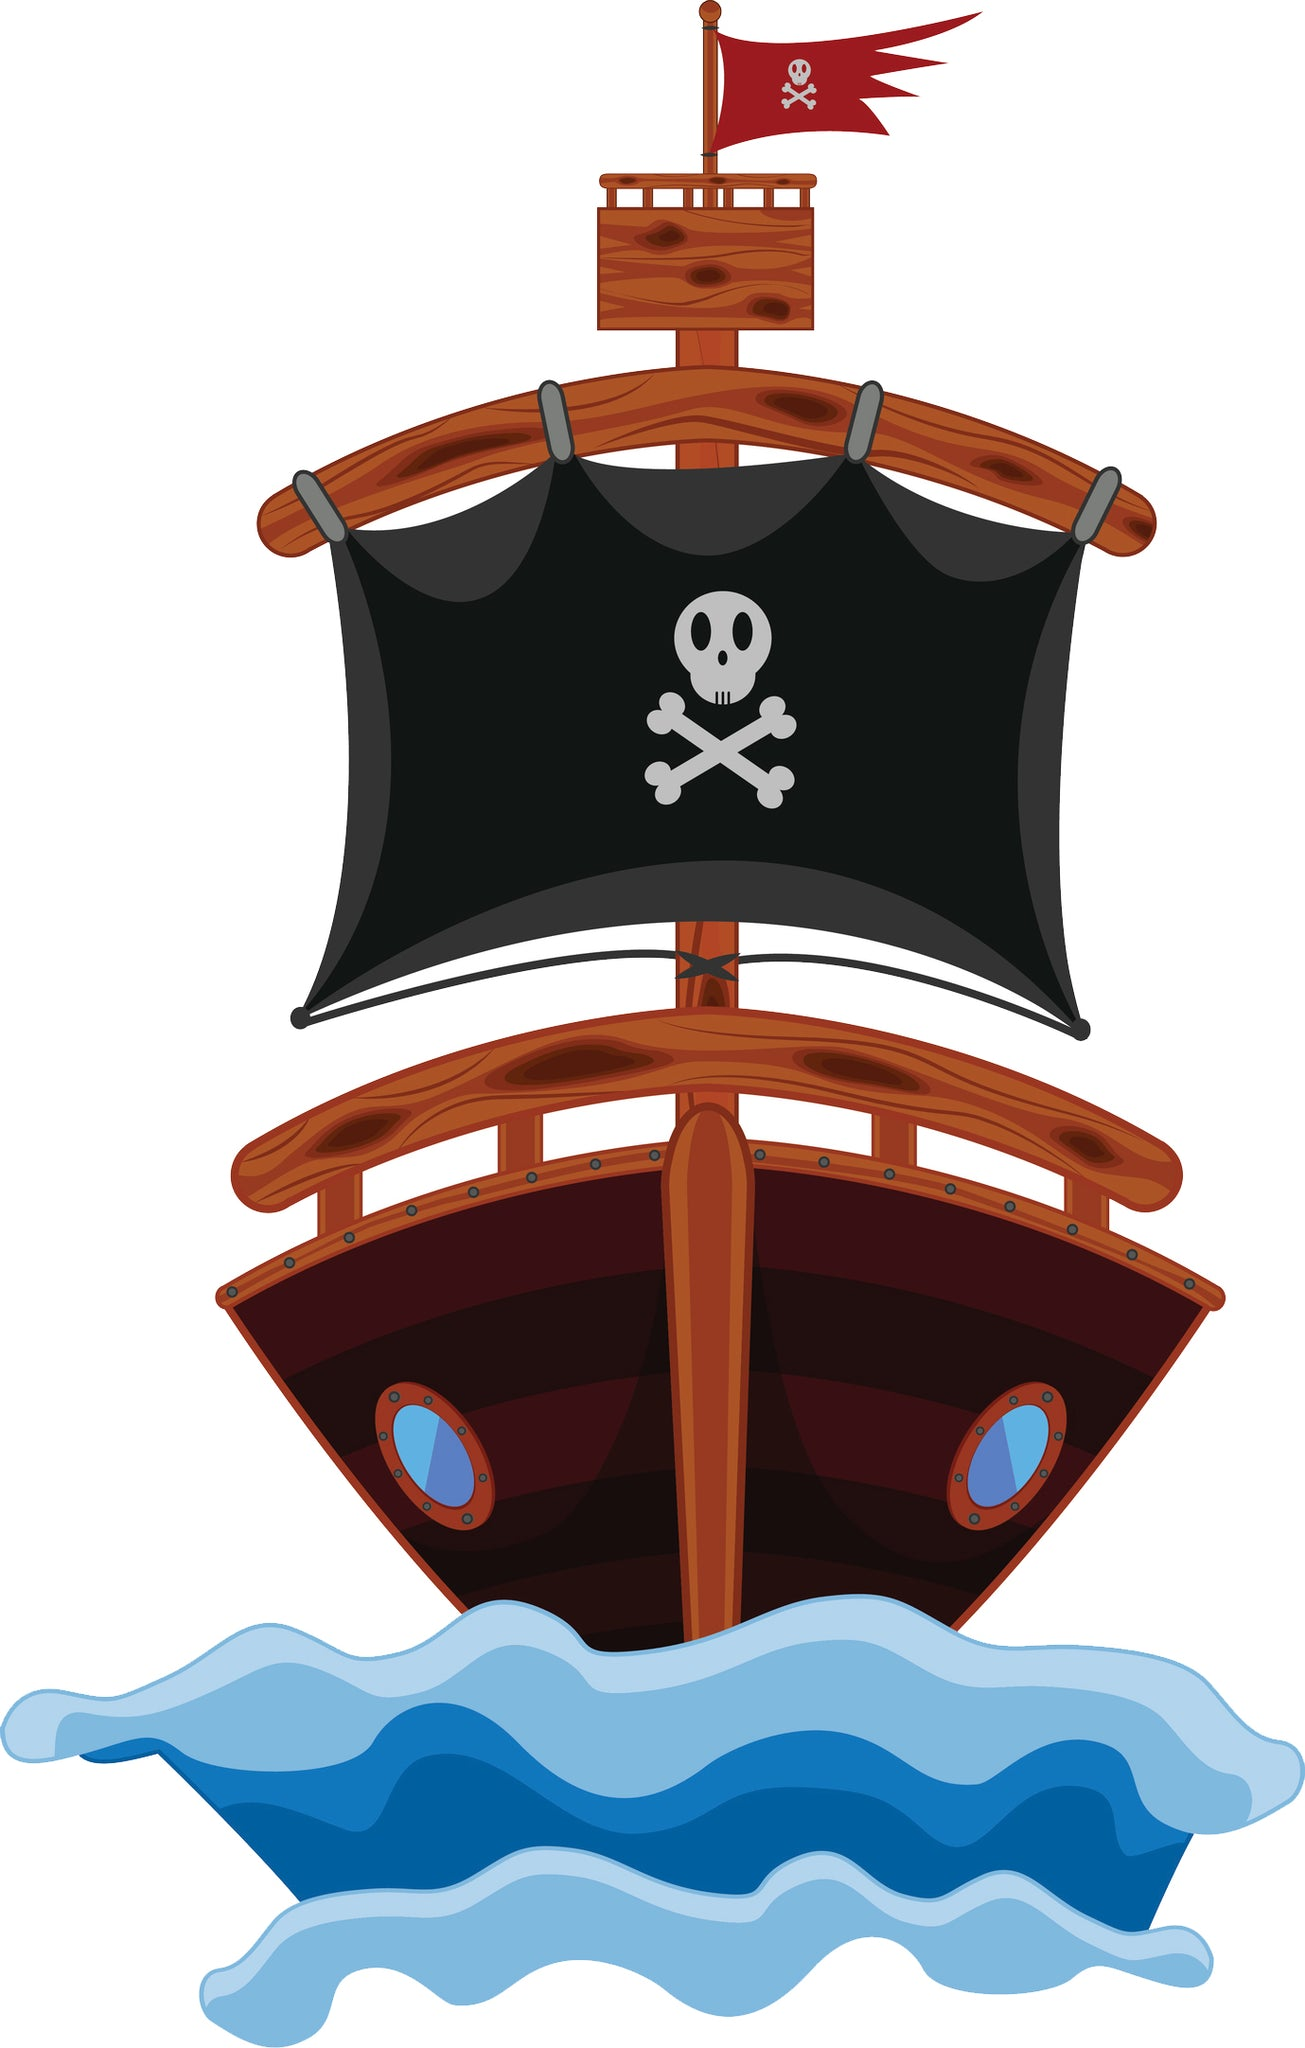 Cool Childhood Kids Pirate Ship Cartoon Vinyl Sticker